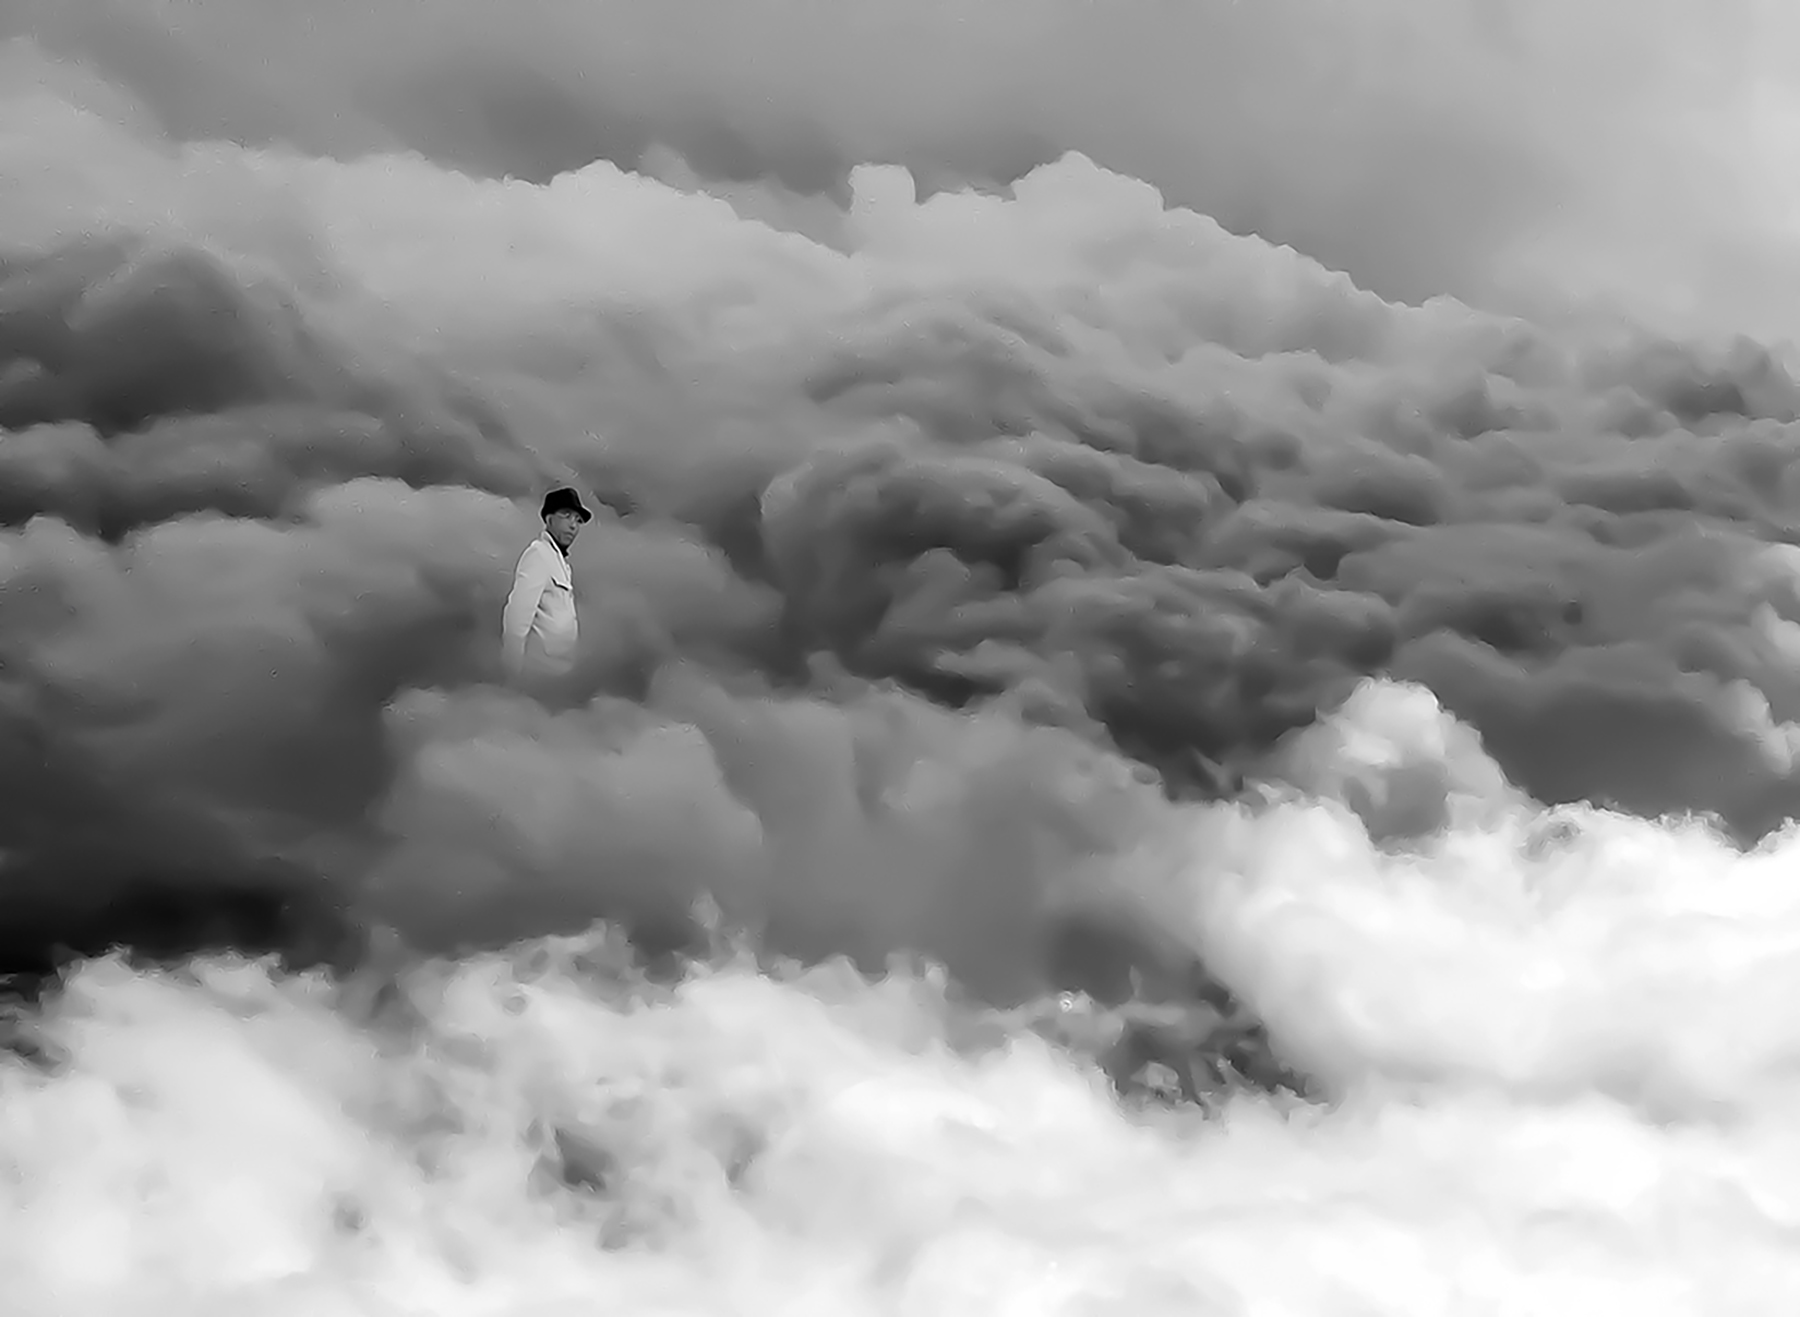 Shifra_Levyathan_The cloud walker.jpg